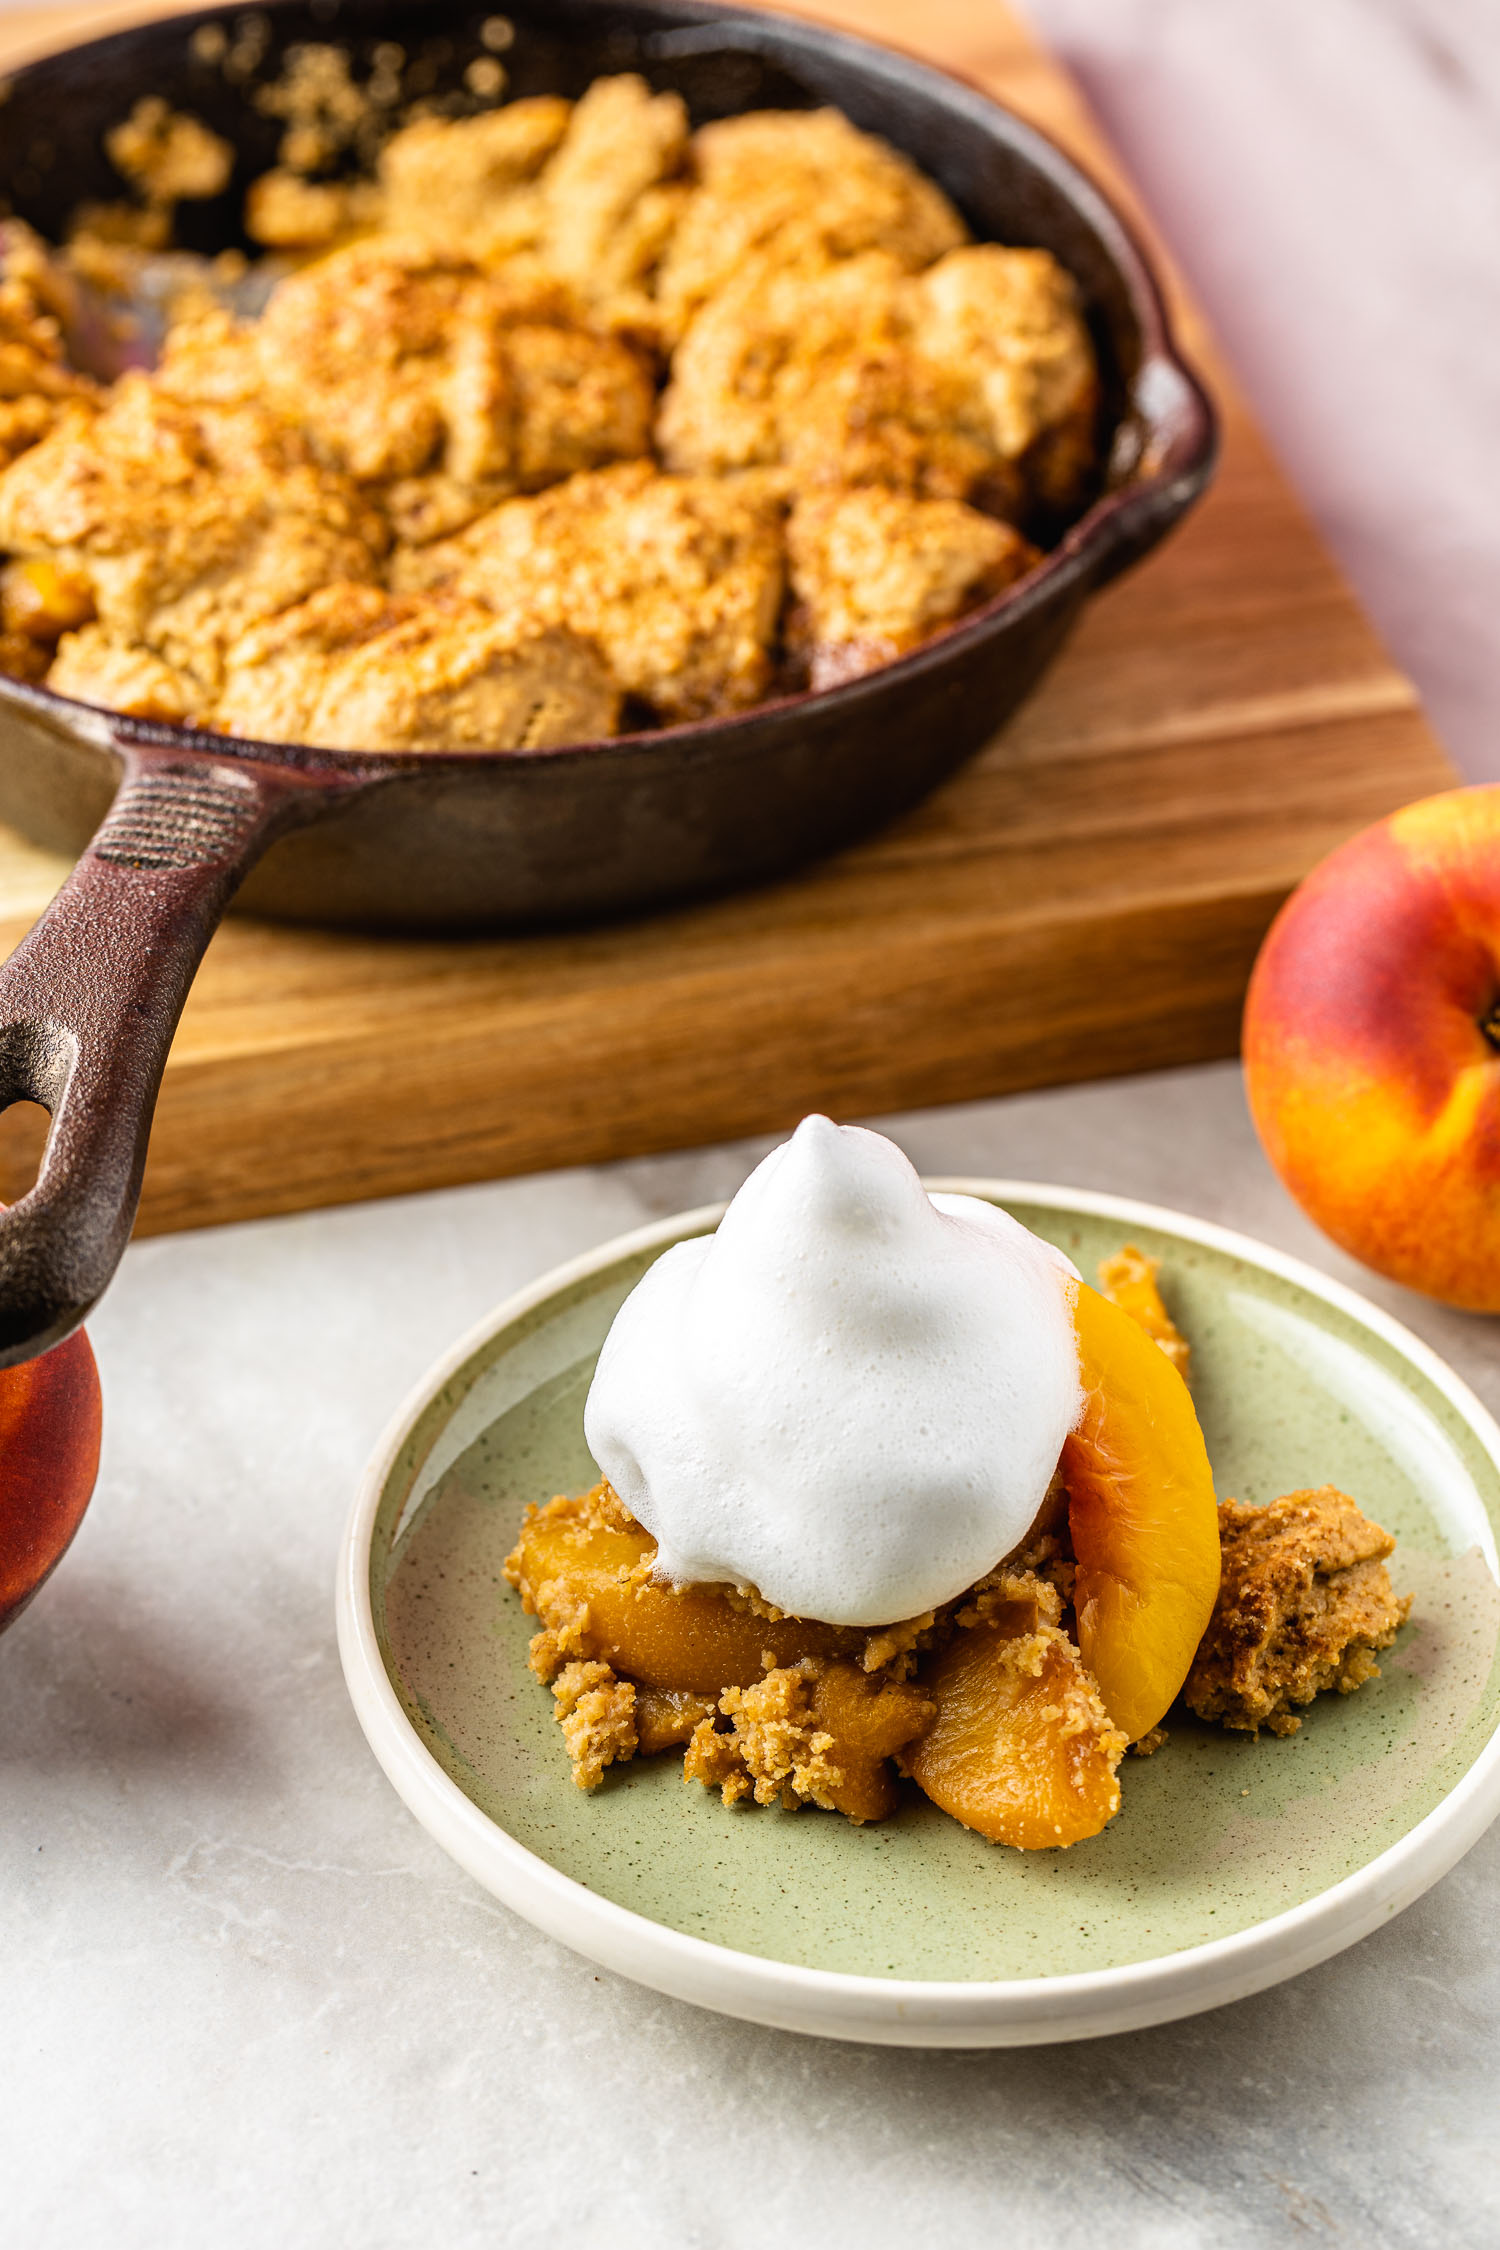 vegan, gluten free peach cobbler  with aquafaba whipped cream